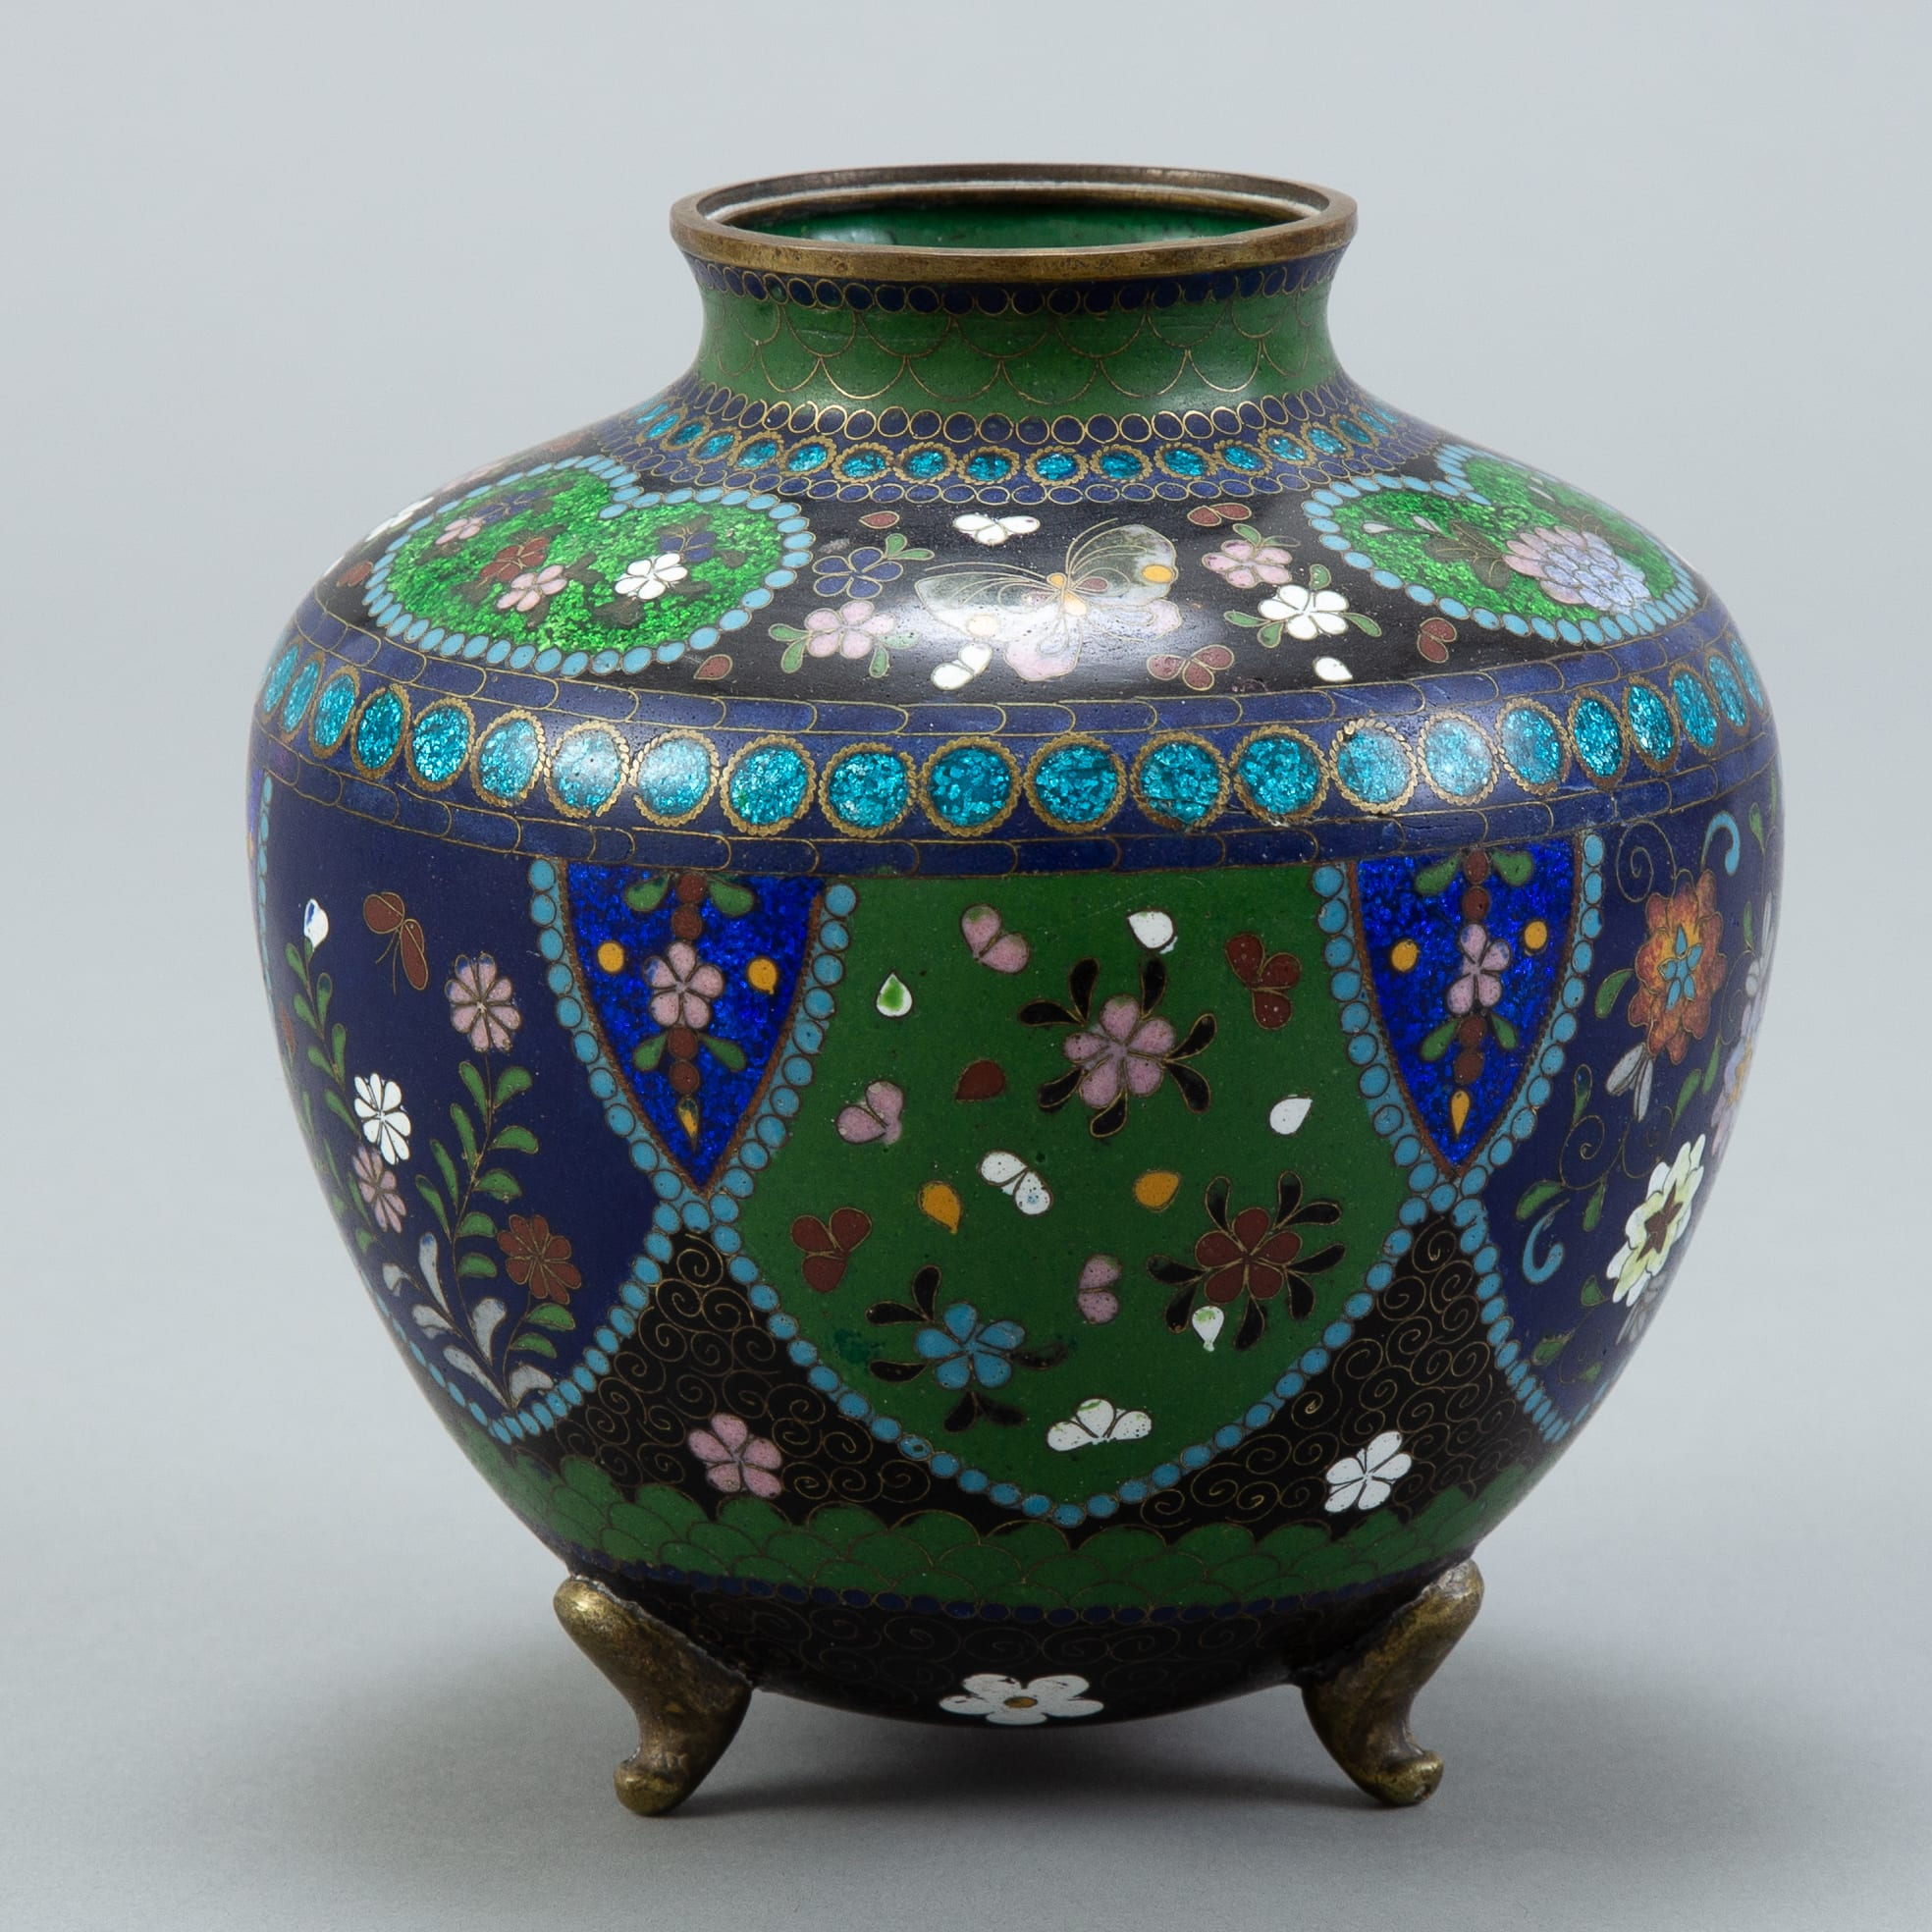 Lot 011: Japanese Meiji Cloisonne Vase - Flowers